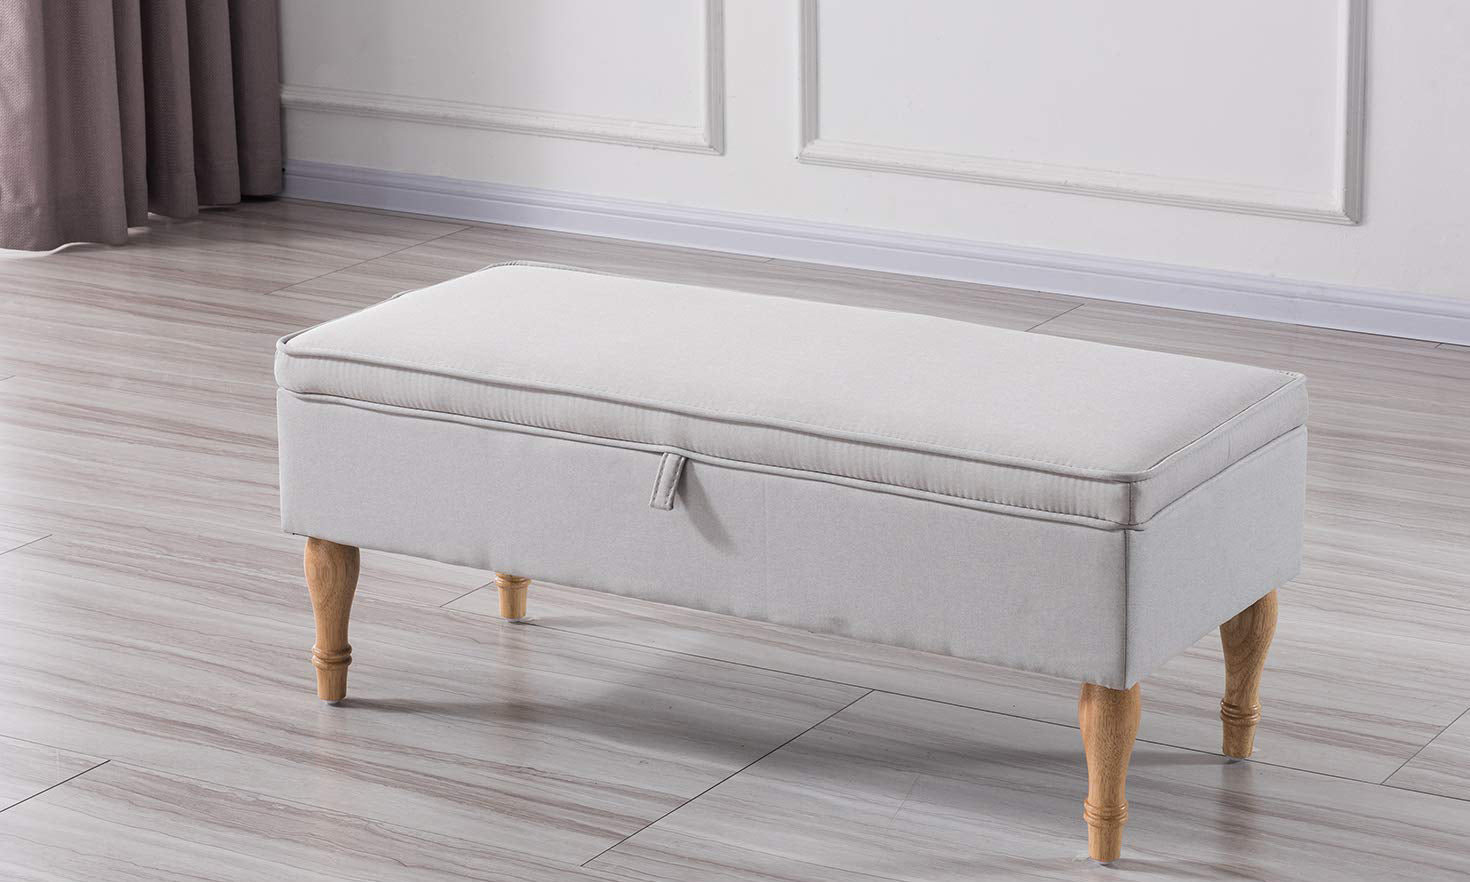 Marvelous Rectangular Tufted Fabric Storage Bench Caraccident5 Cool Chair Designs And Ideas Caraccident5Info